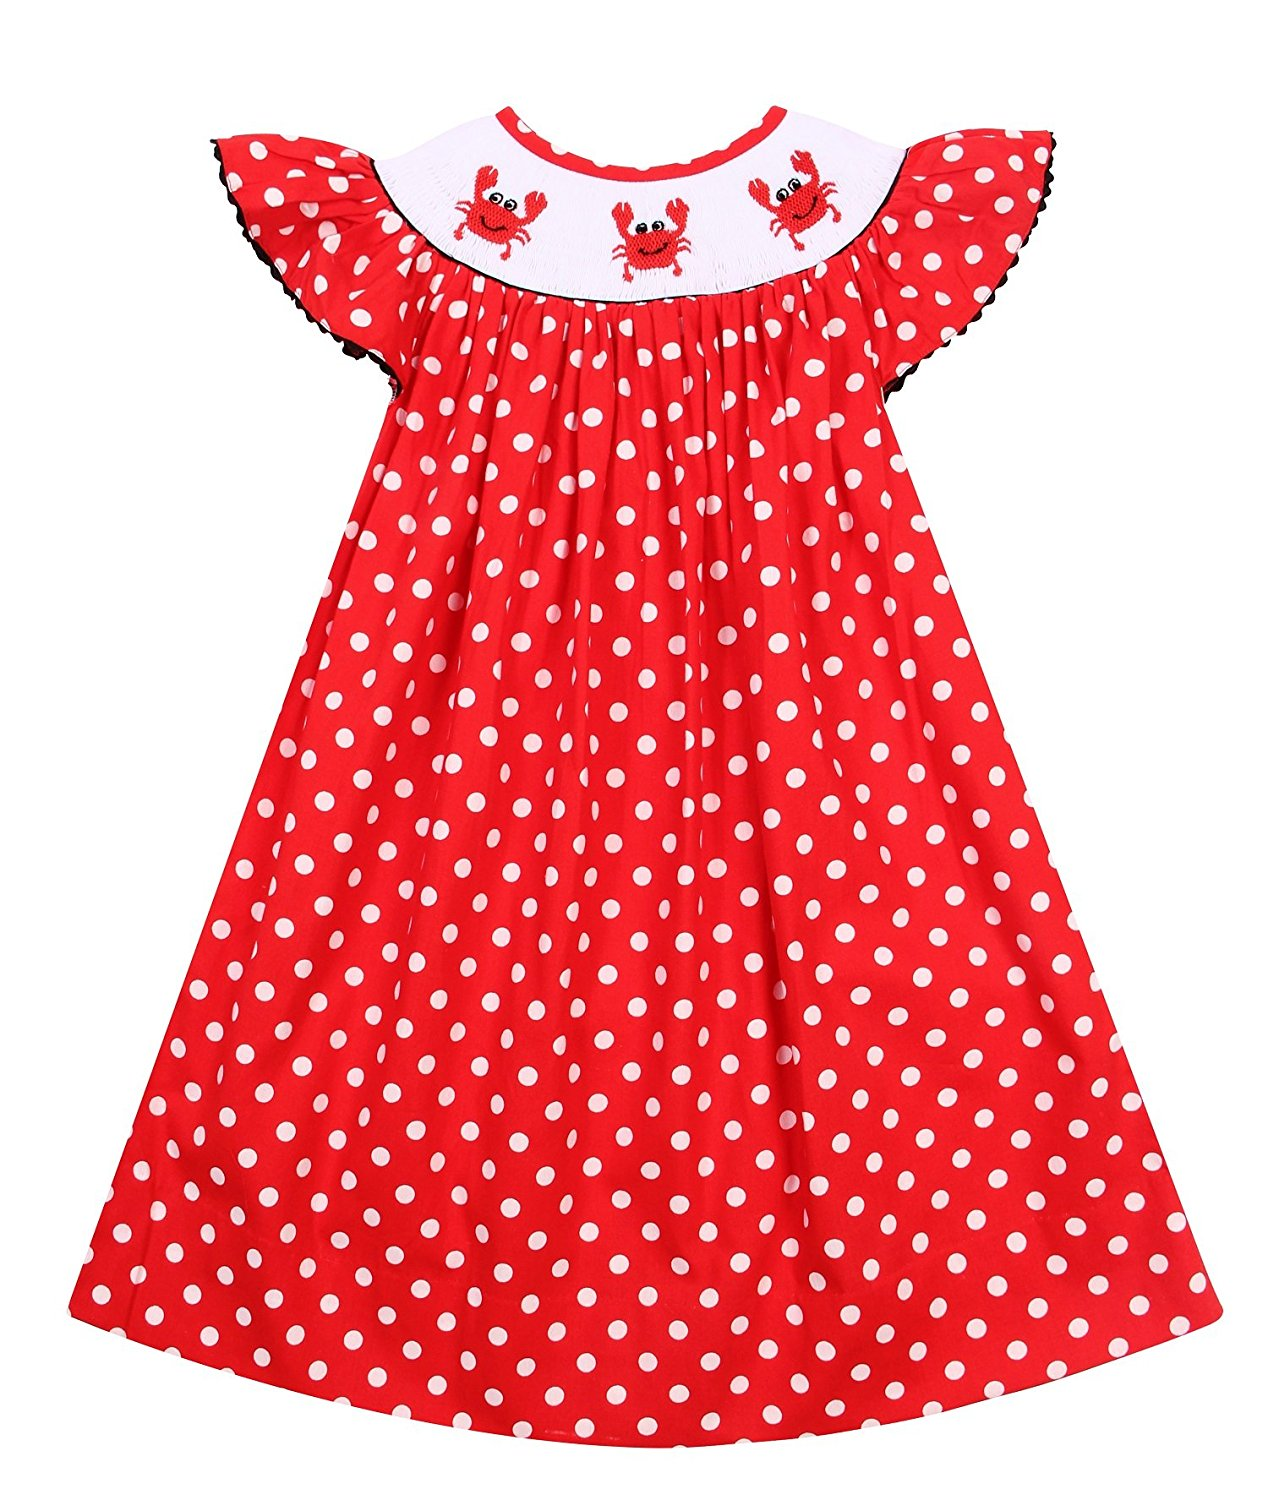 7ef11a229 Get Quotations · Babeeni Red Dress for Girls with Little Cute Crab Hand- Smocked Patterns and Angel Sleeves